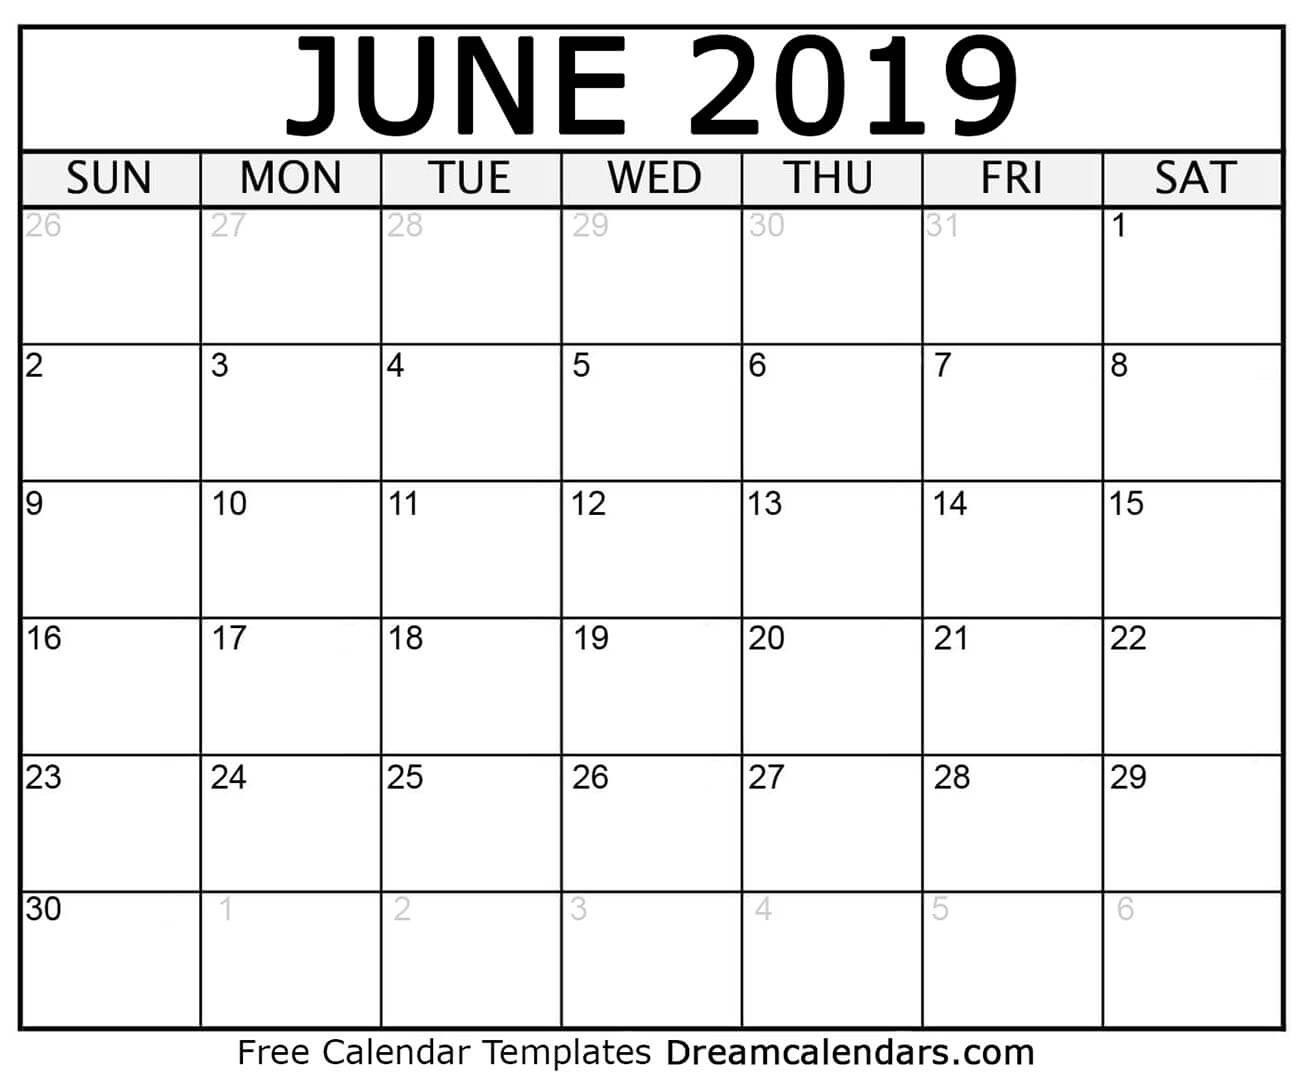 Printable June 2019 Calendar for Monthly